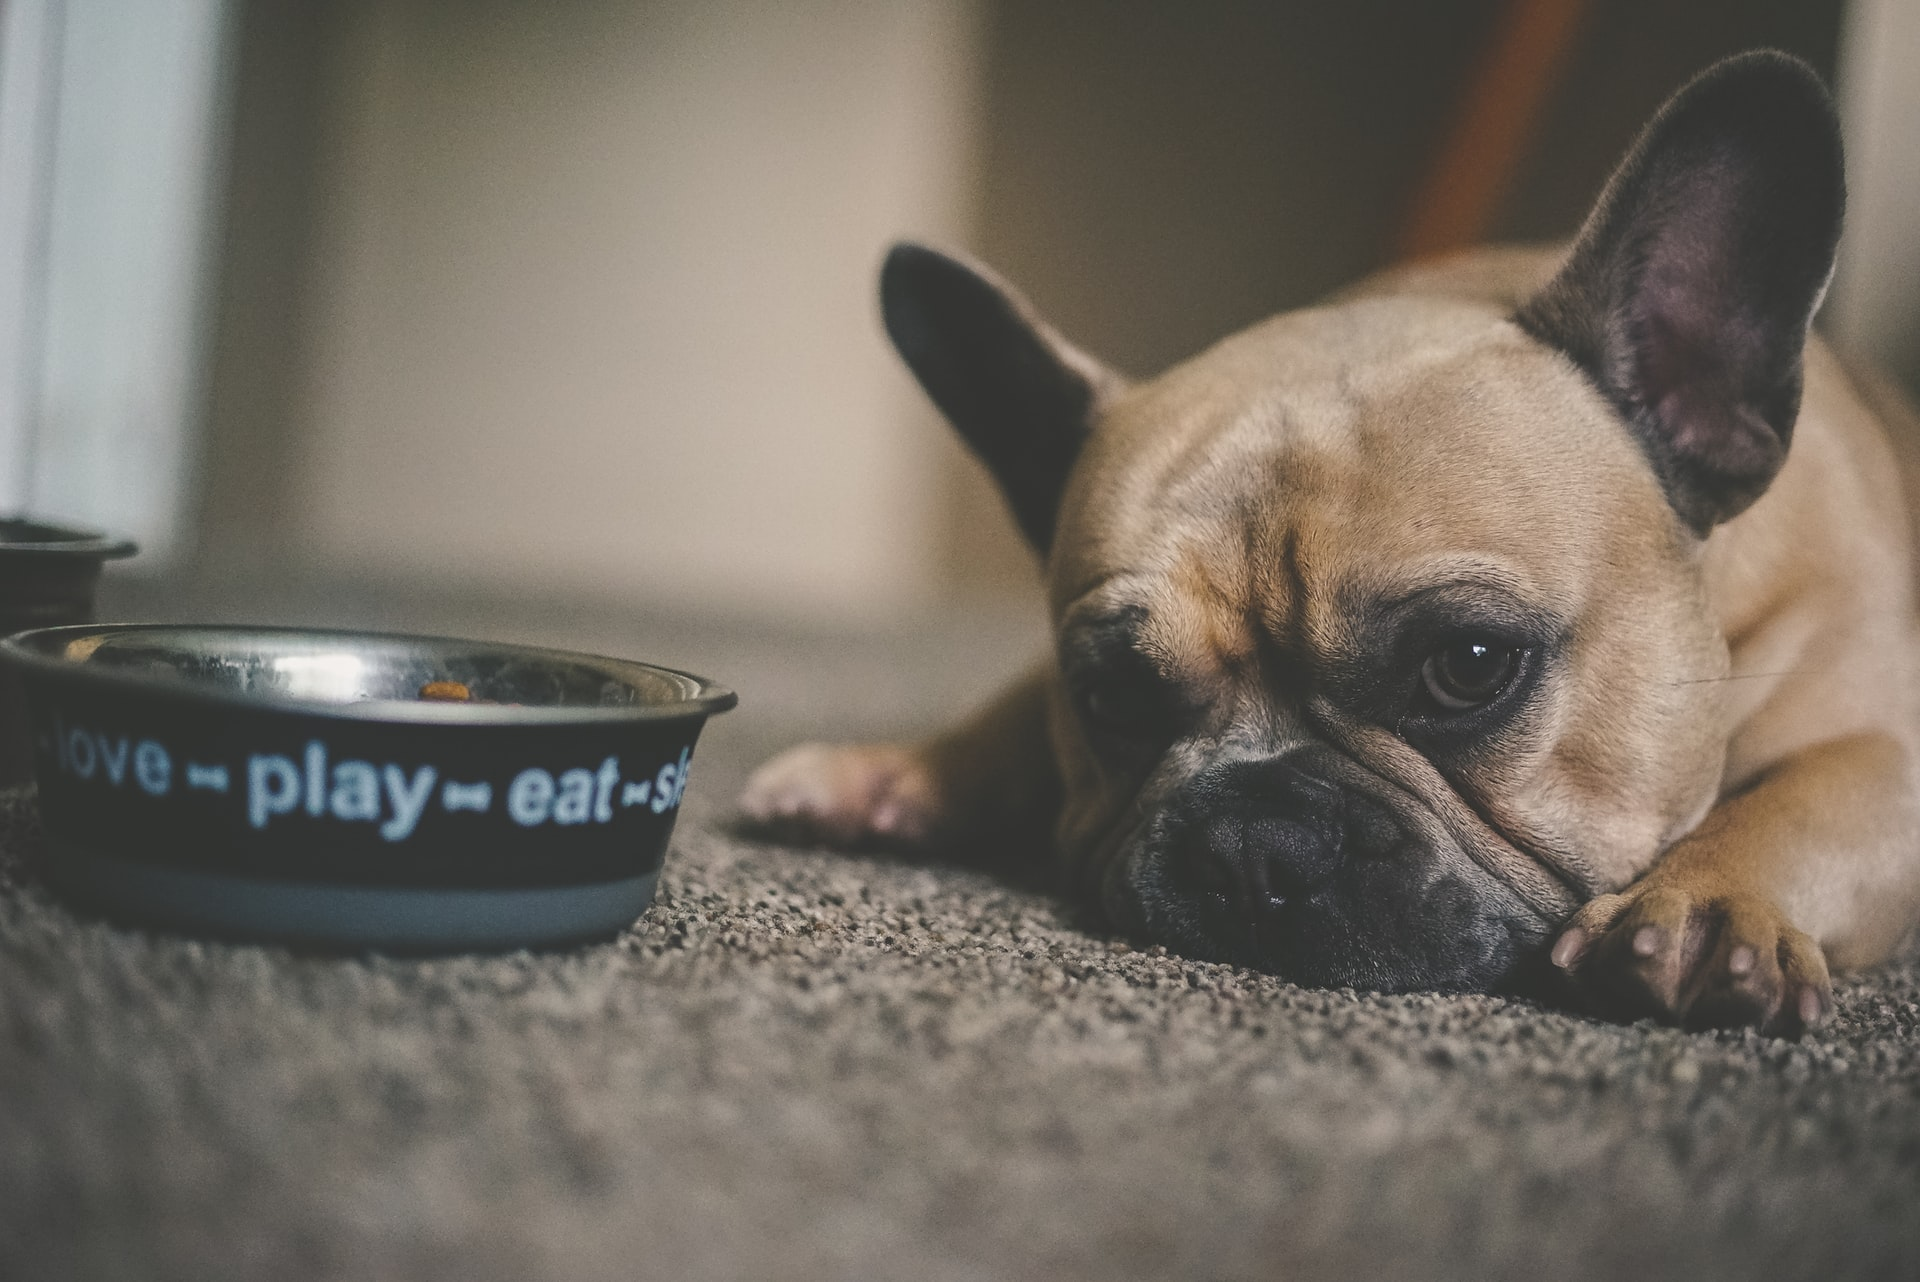 French bull dog lying next to food bowl - when you don't know what to feed your dog with no teeth.